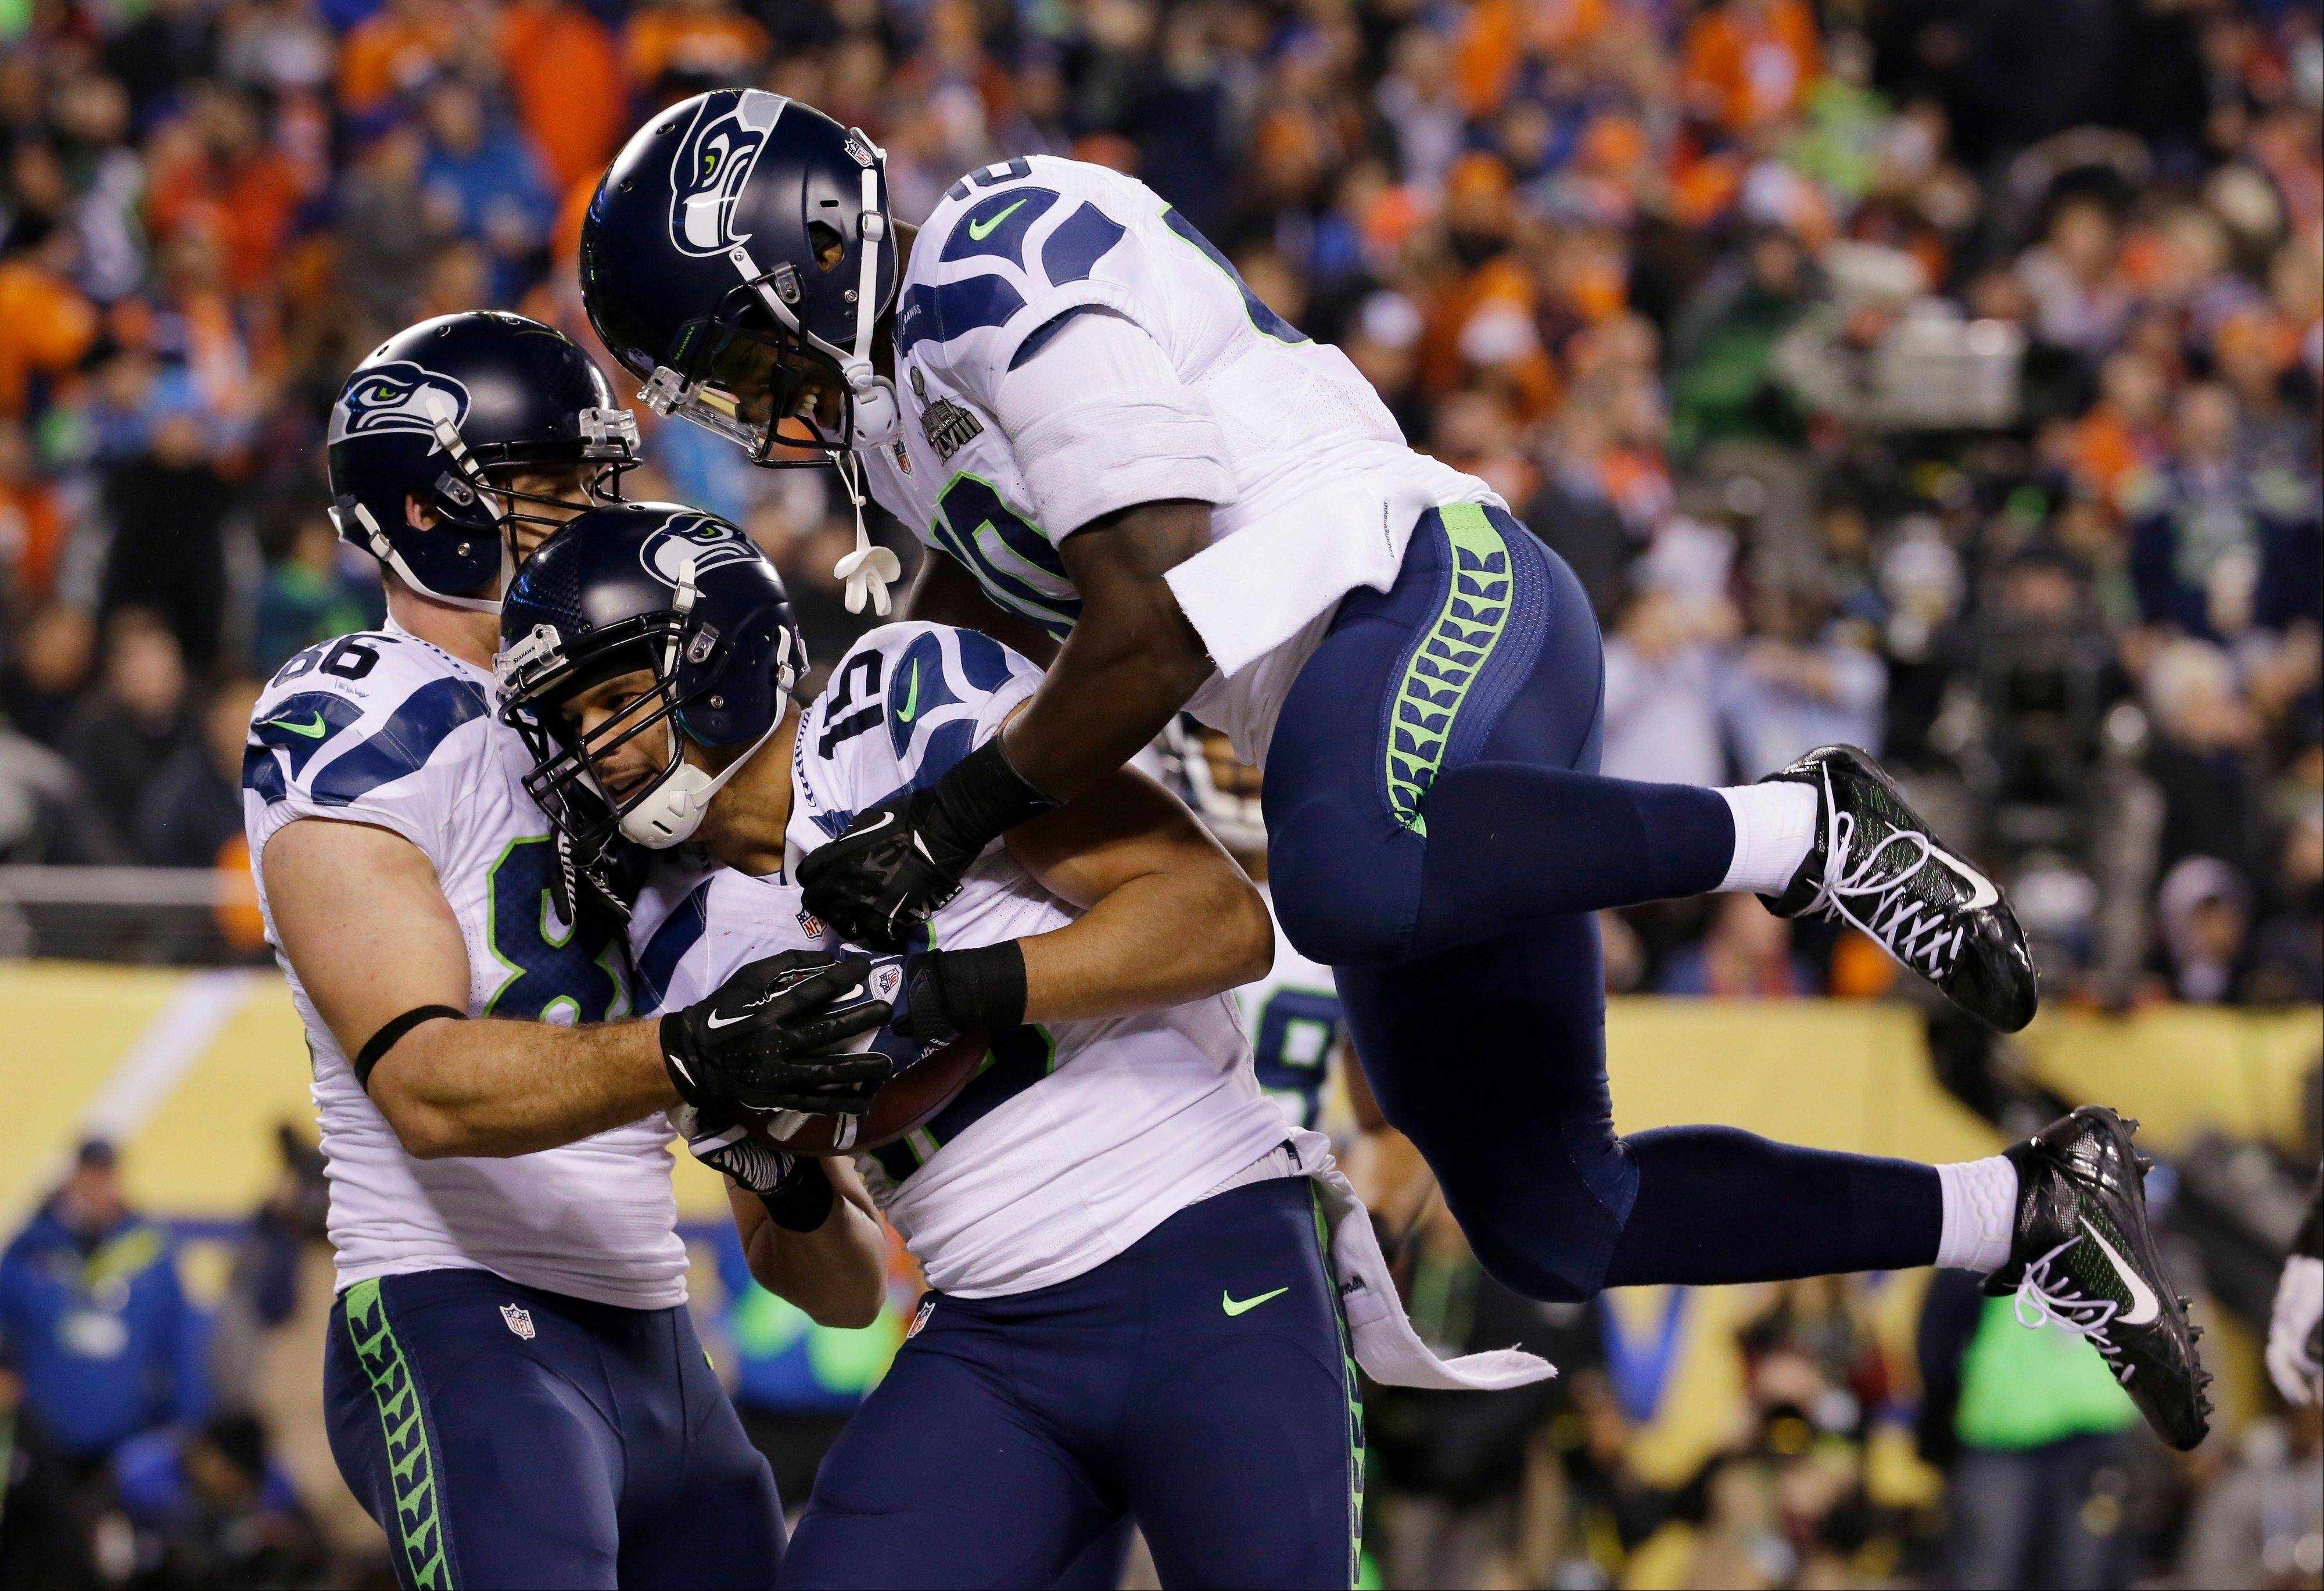 Seattle Seahawks' Jermaine Kearse, center, celebrates with teammate Derrick Coleman, right, after catching a 23-yard touchdown pass during the second half of the NFL Super Bowl XLVIII football game against the Denver Broncos Sunday, Feb. 2, 2014, in East Rutherford, N.J. The Seahawks won 43-8.